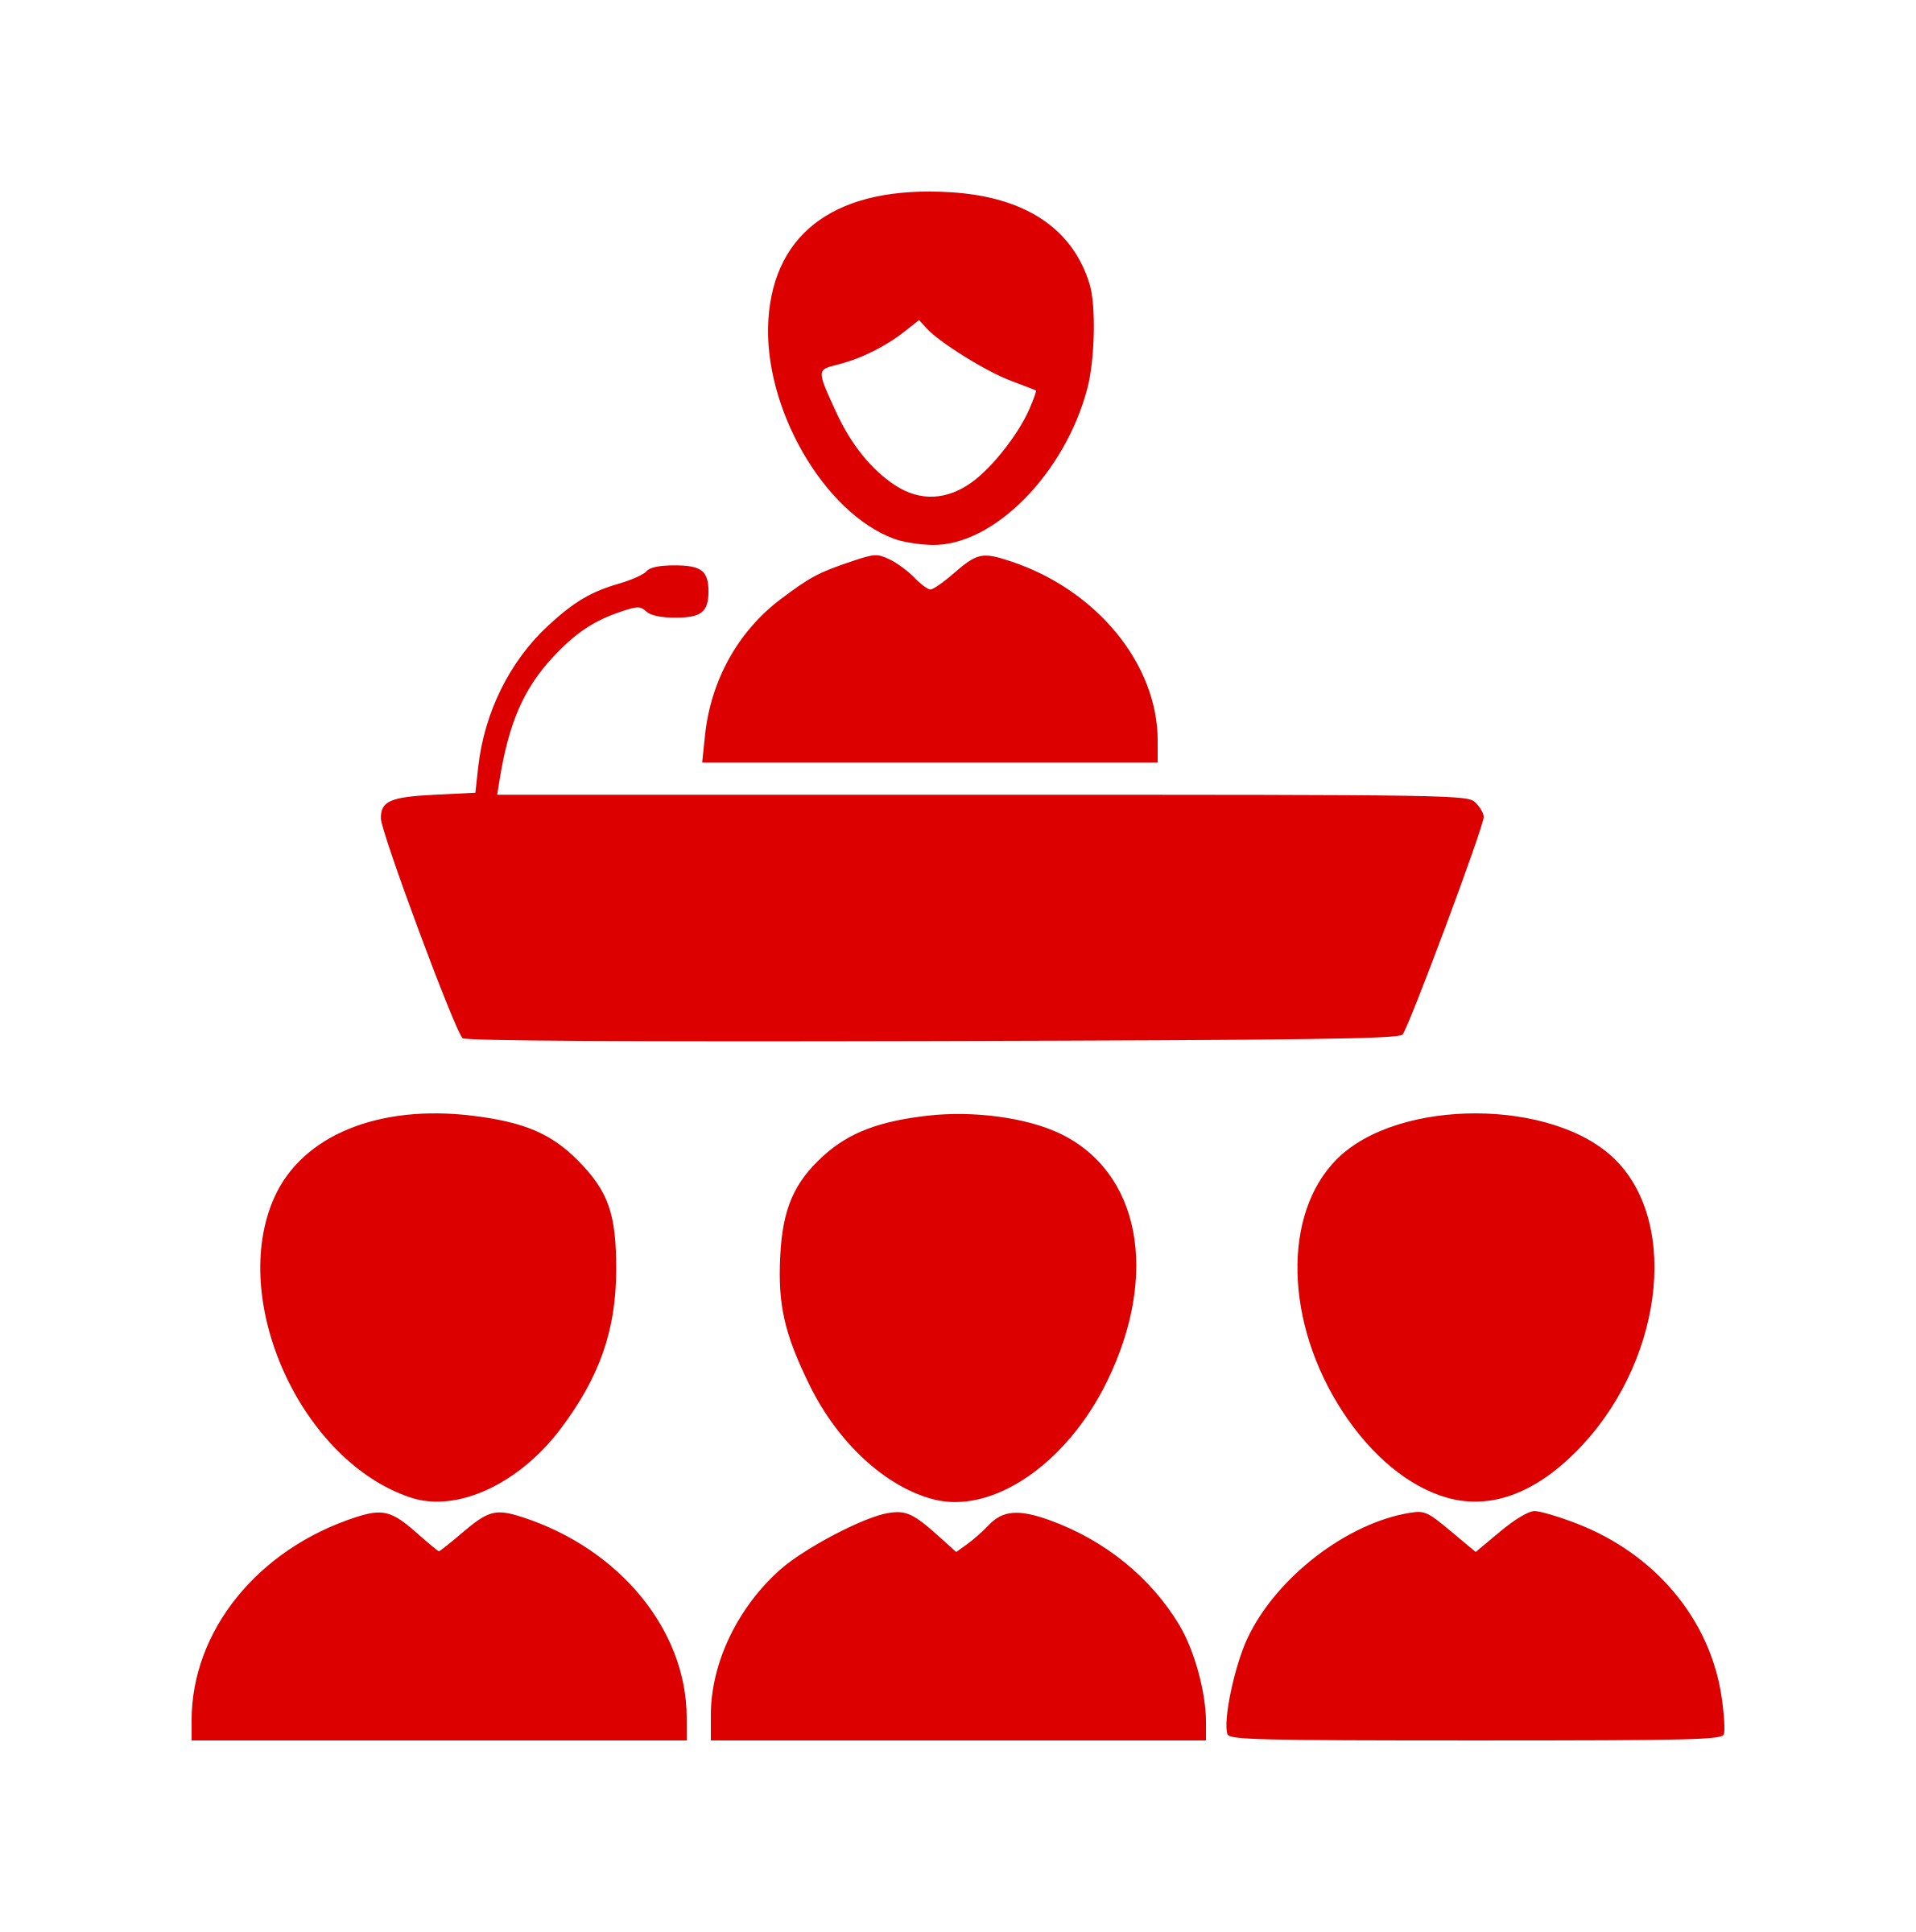 Conference clipart icon. Meeting big image png